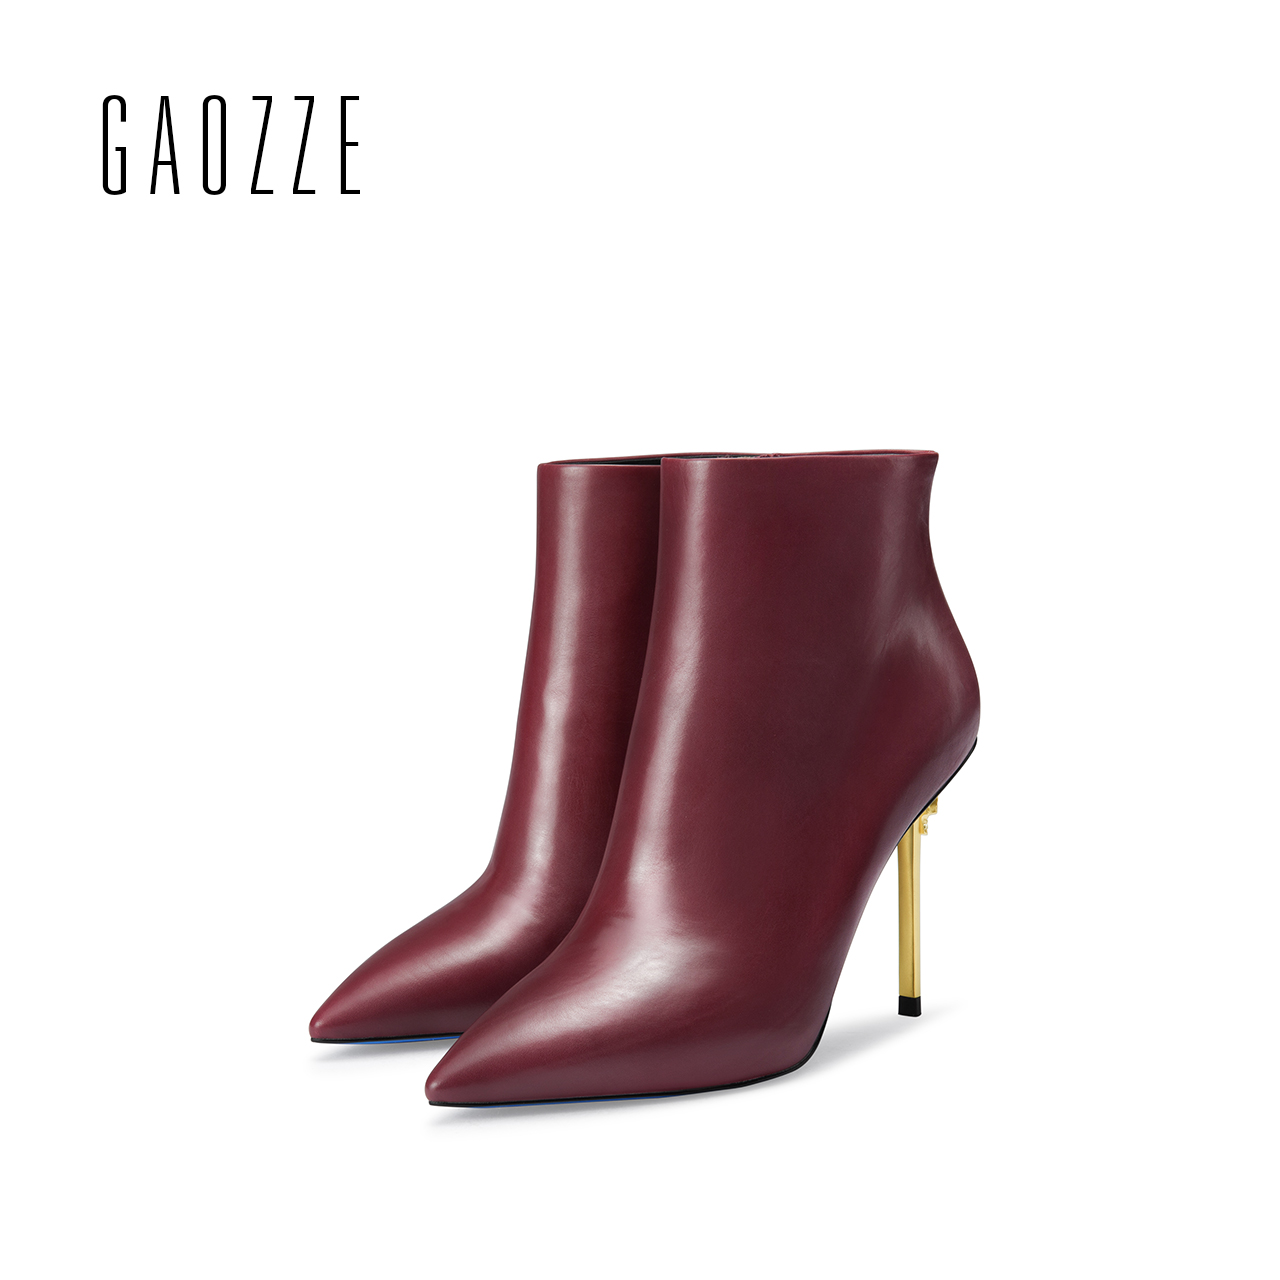 GAOZZE autumn ankle boots for women genuine leather boots high heel shoes side zipper boots female pointed toe boots 2017 new стоимость